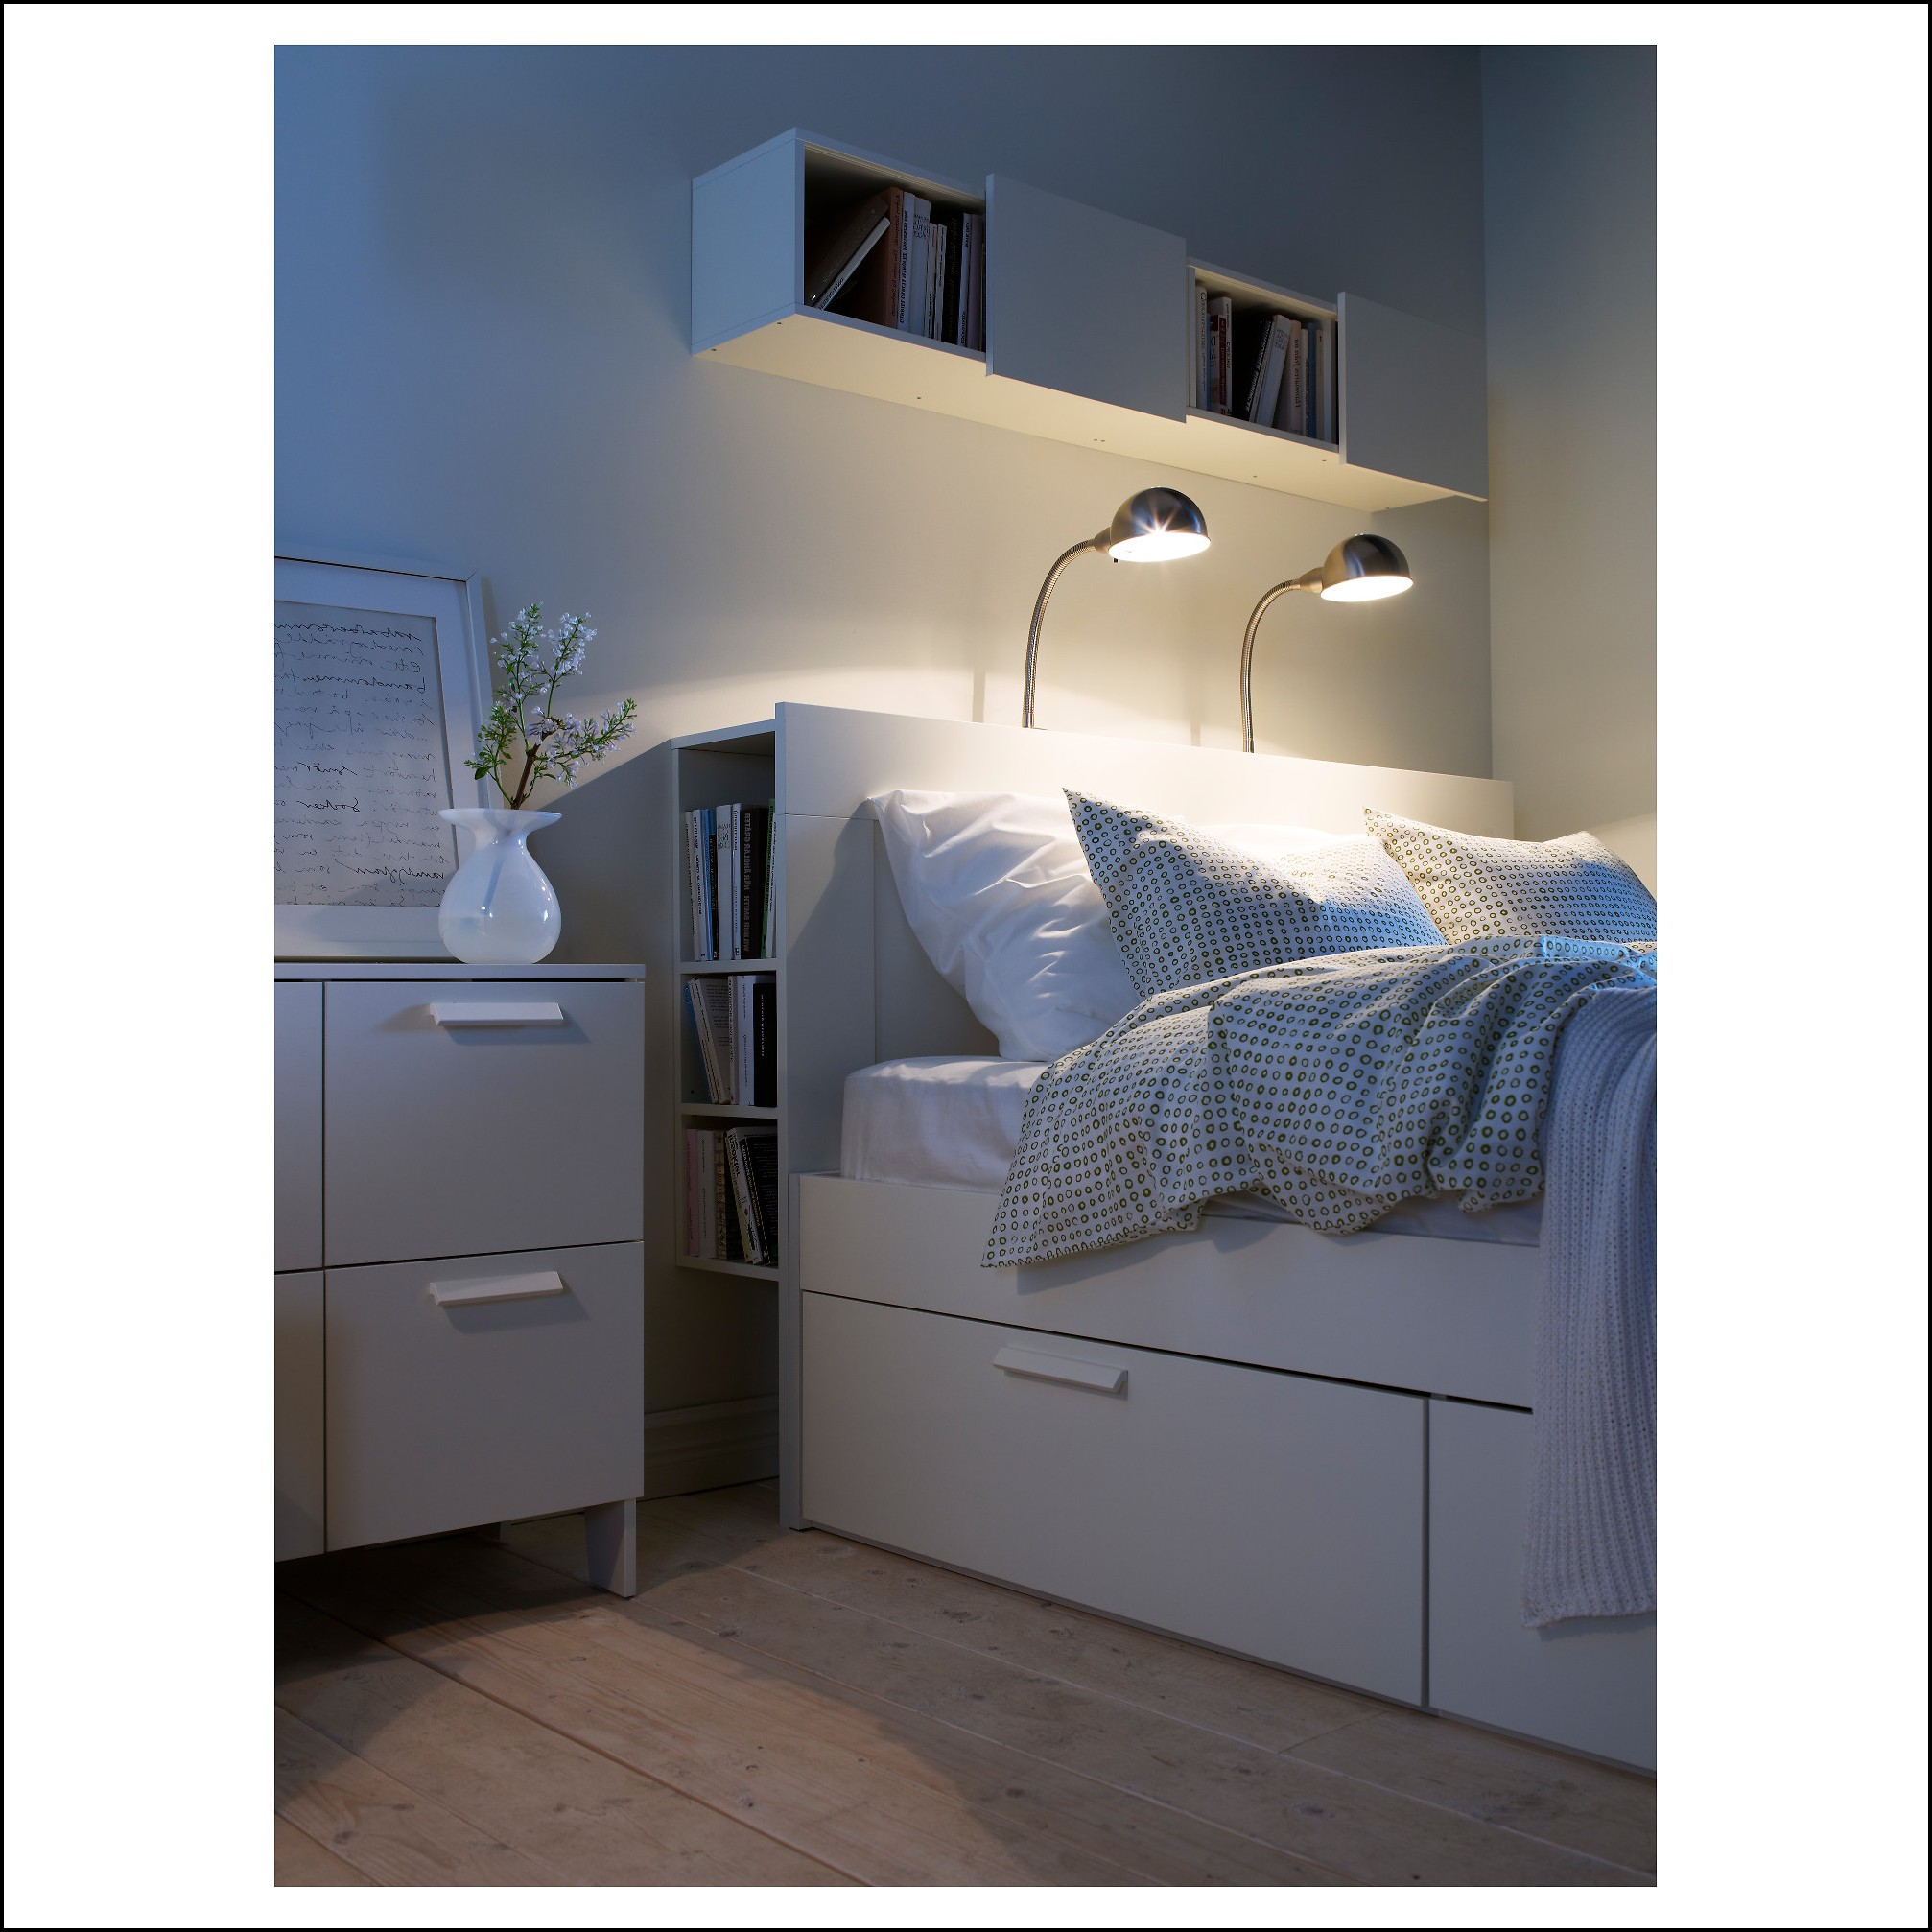 ikea brimnes bett kopfteil betten house und dekor. Black Bedroom Furniture Sets. Home Design Ideas